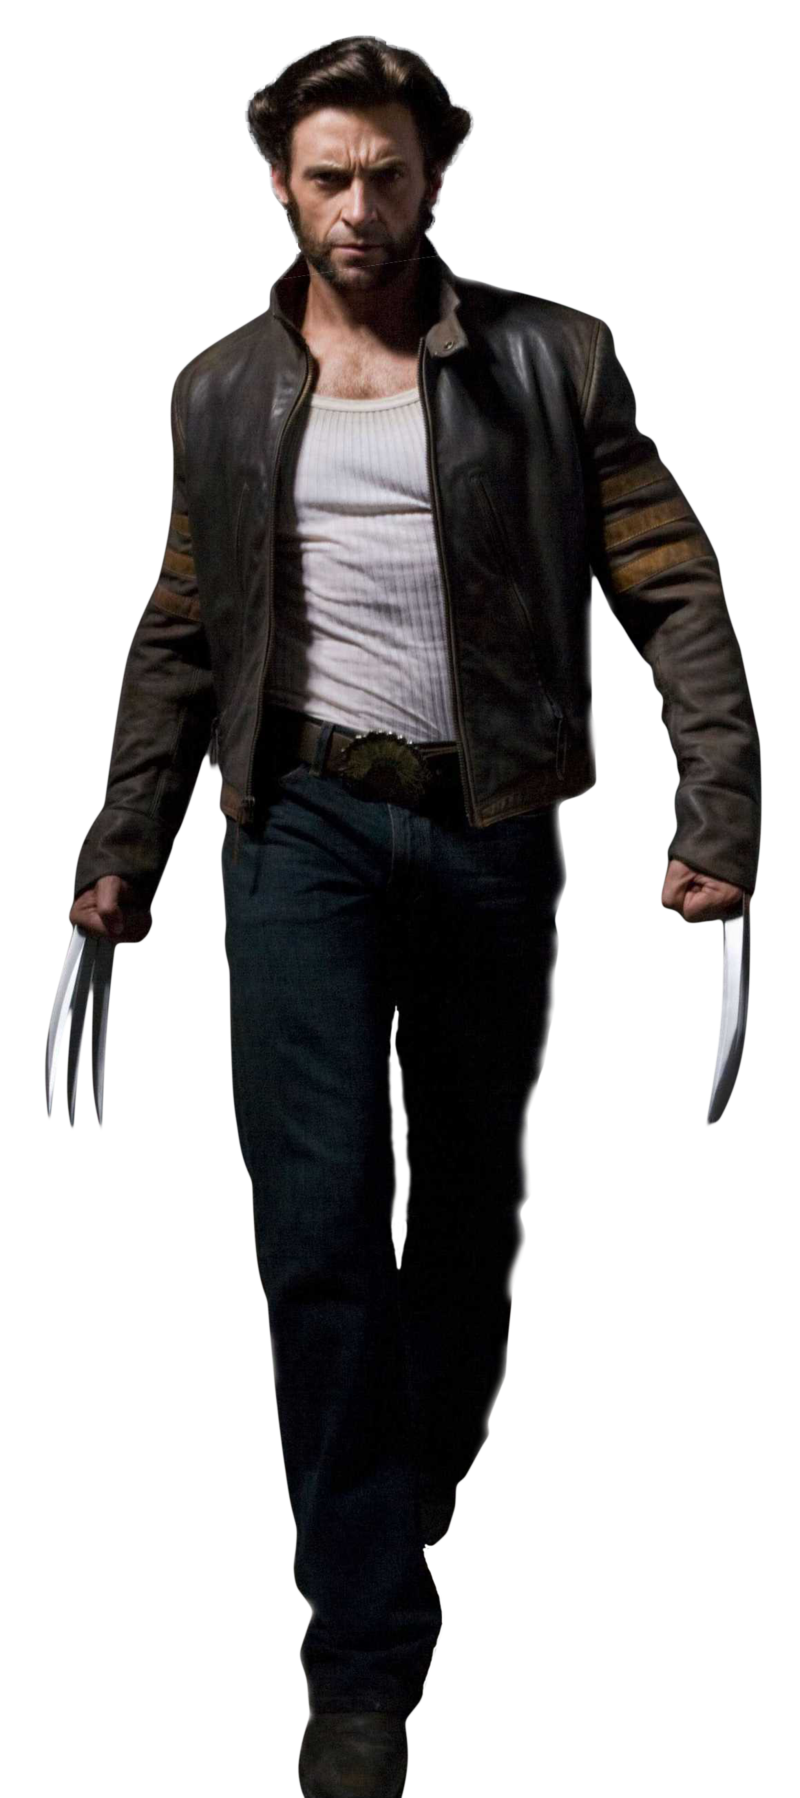 Download free by haris. Wolverine png image freeuse download